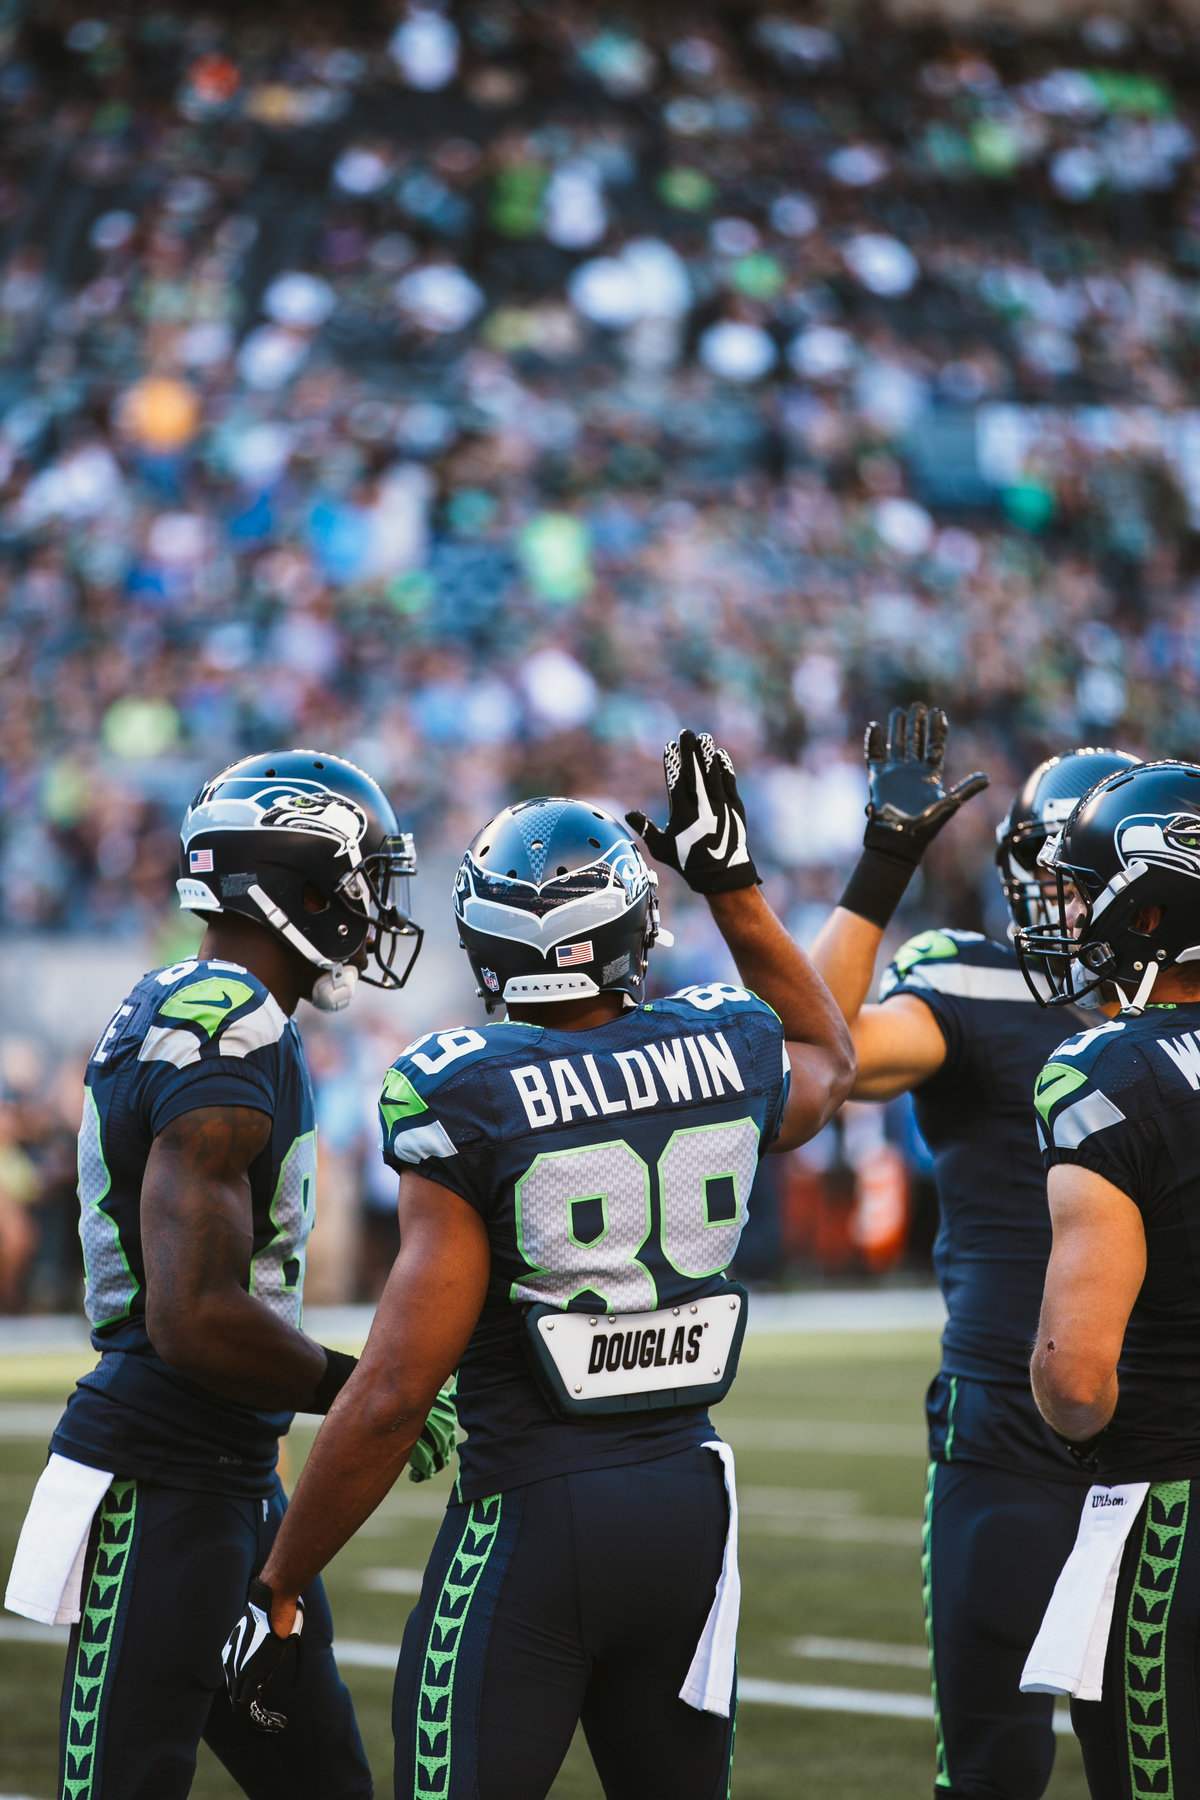 SeahawksVSPackers_9.4.14-6737